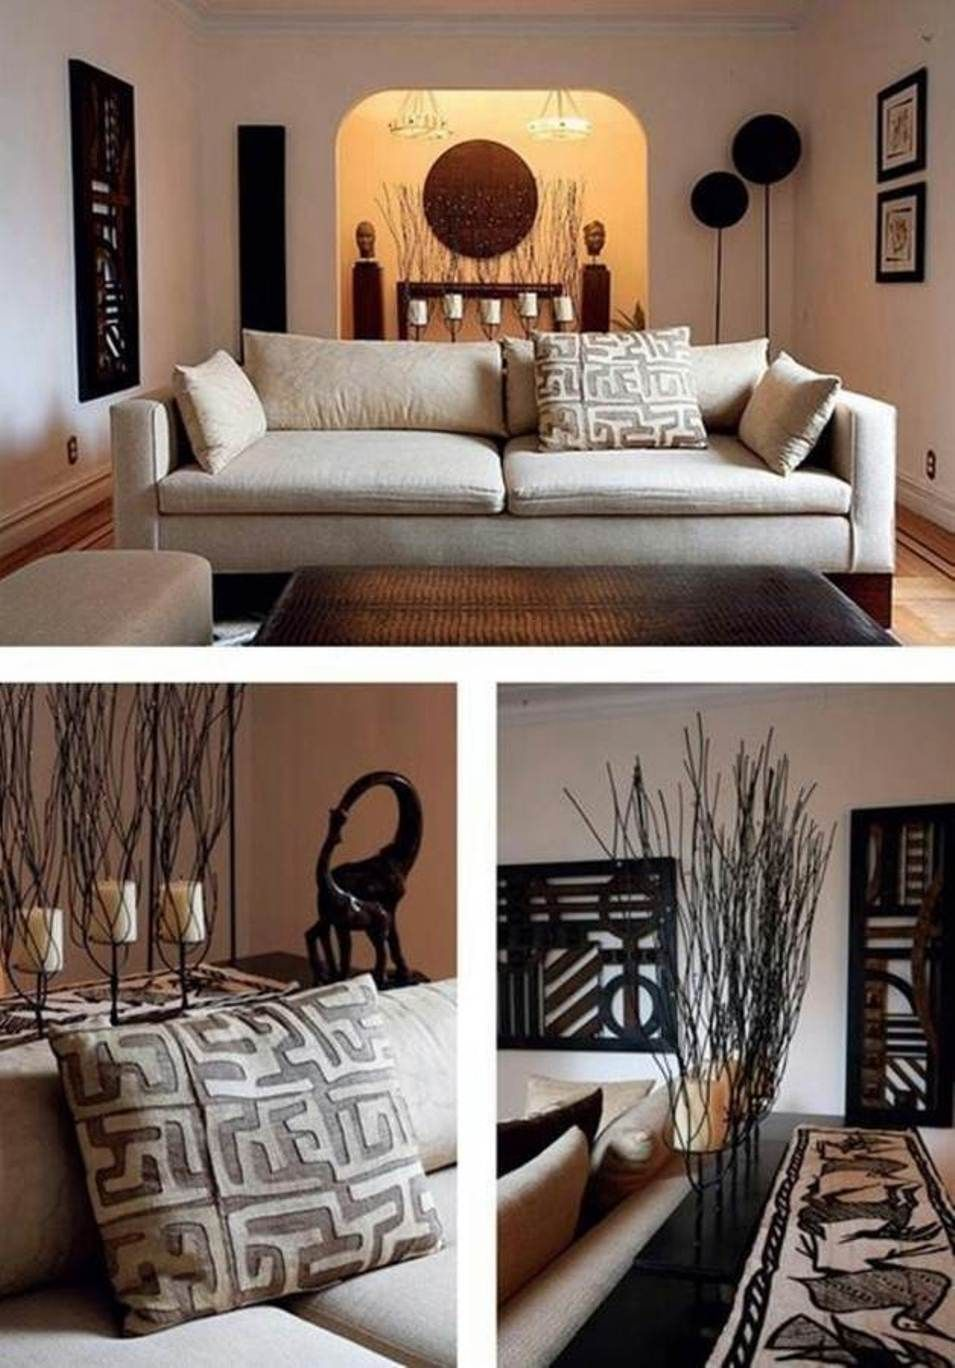 South african decorating ideas african tribal global for South african bedroom designs